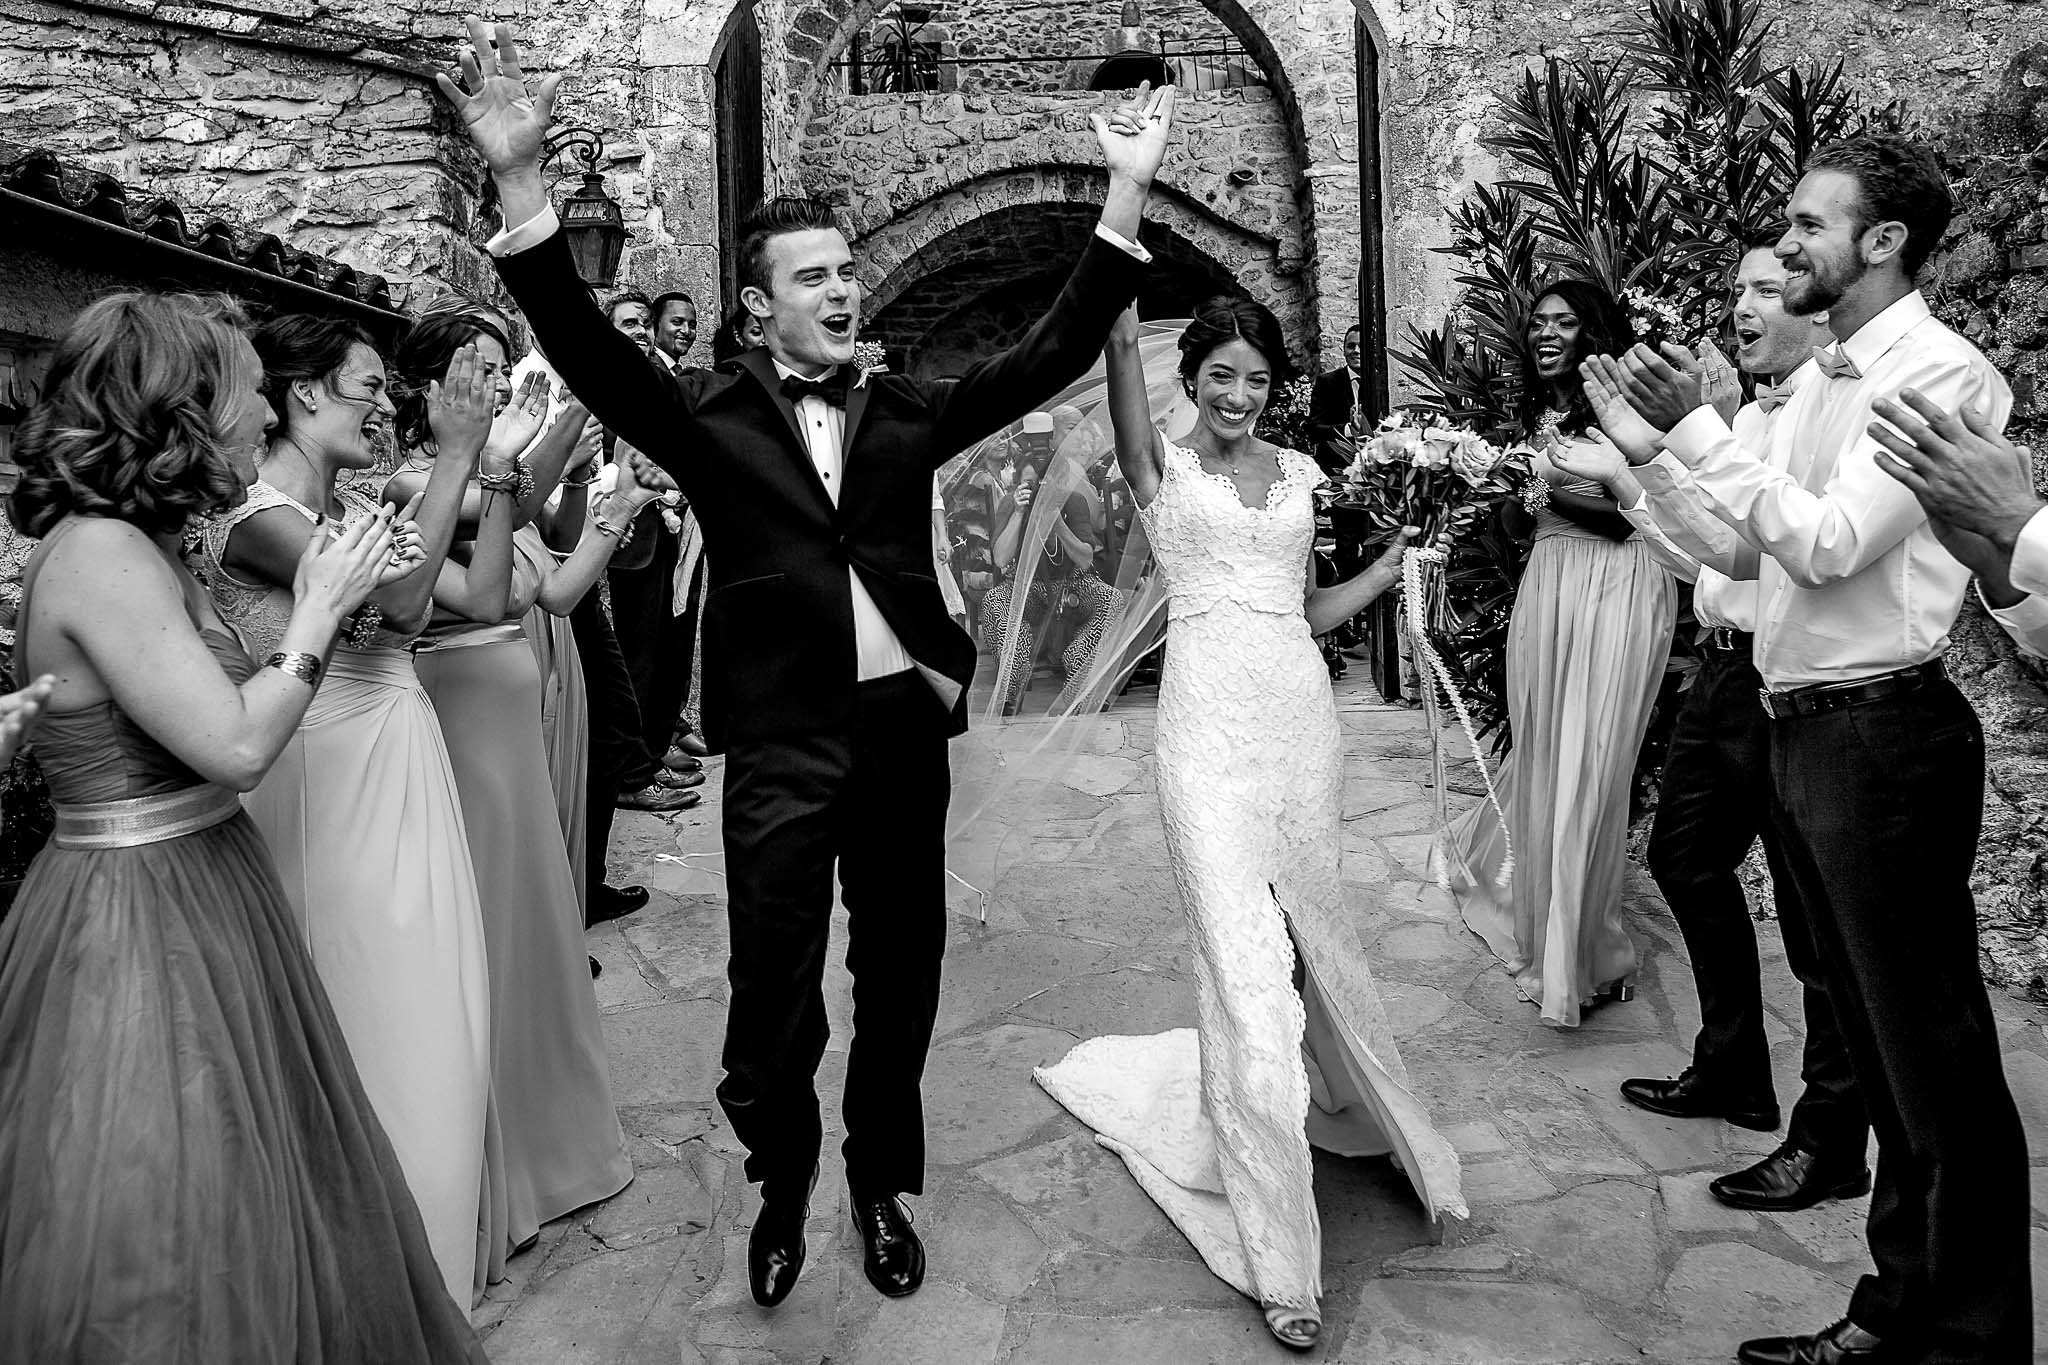 Bride and Groom ecstatic exit at chateau wedding near Montpellier in France